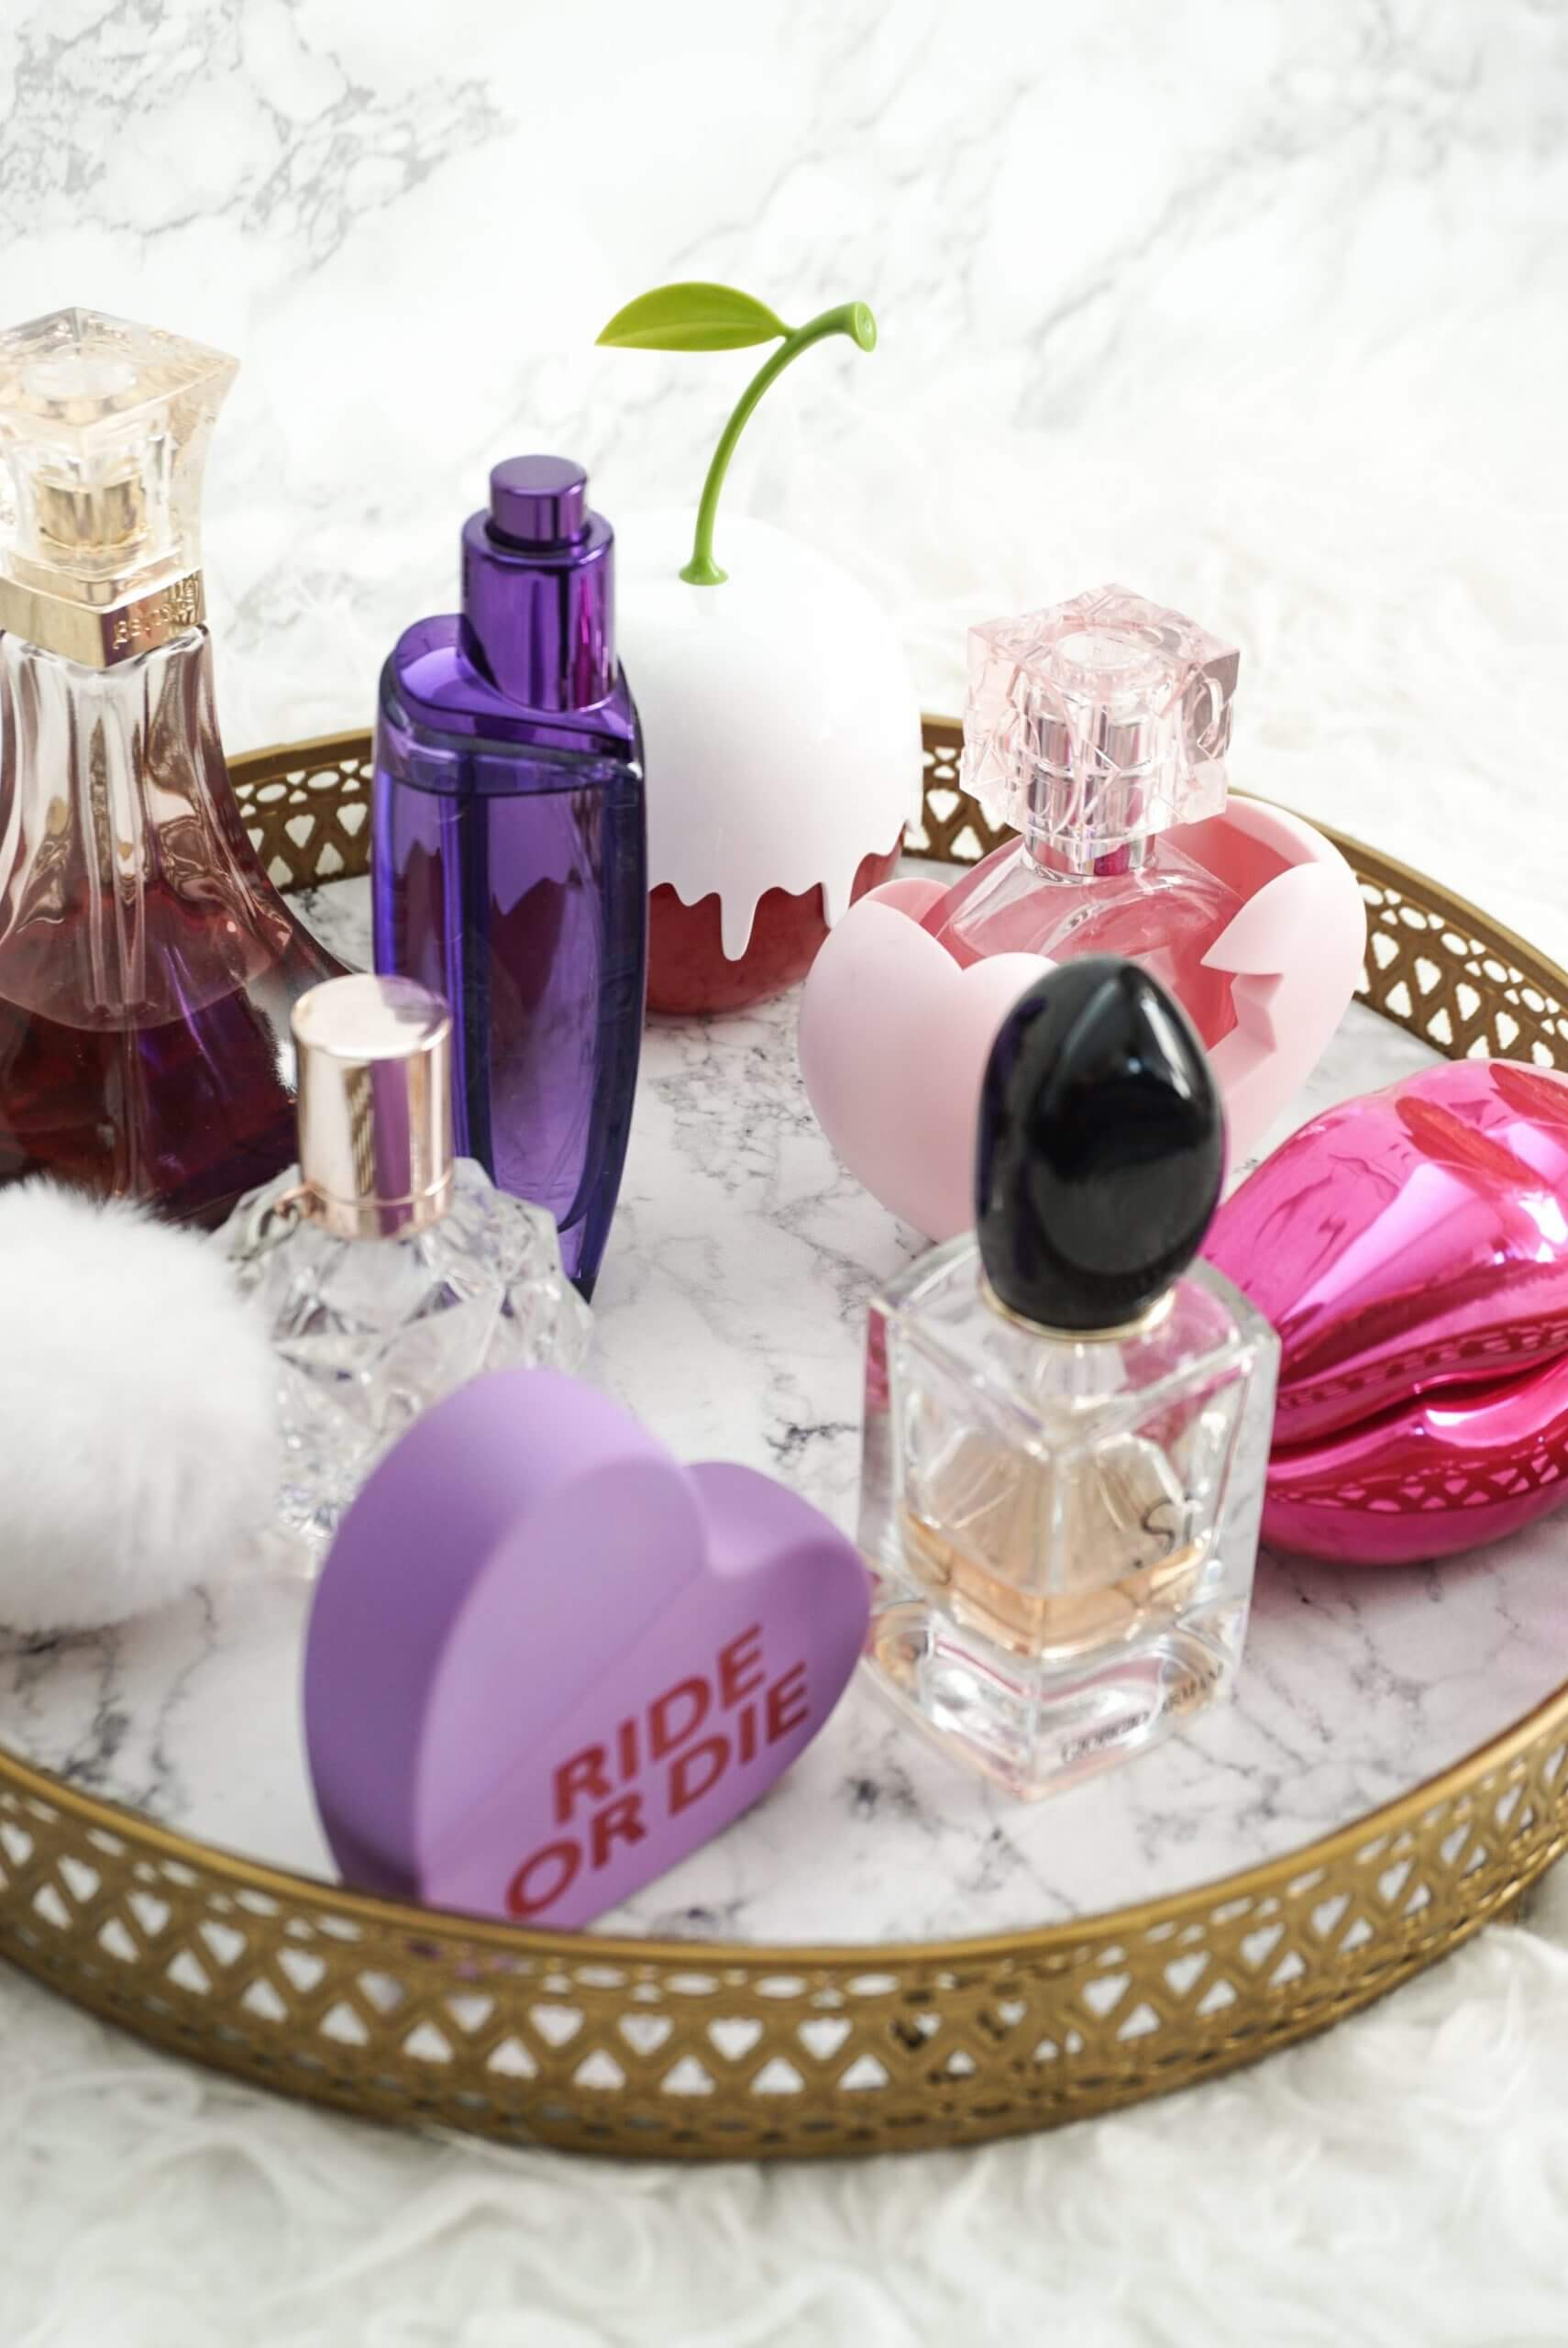 My Current & Most Loved Fragrances